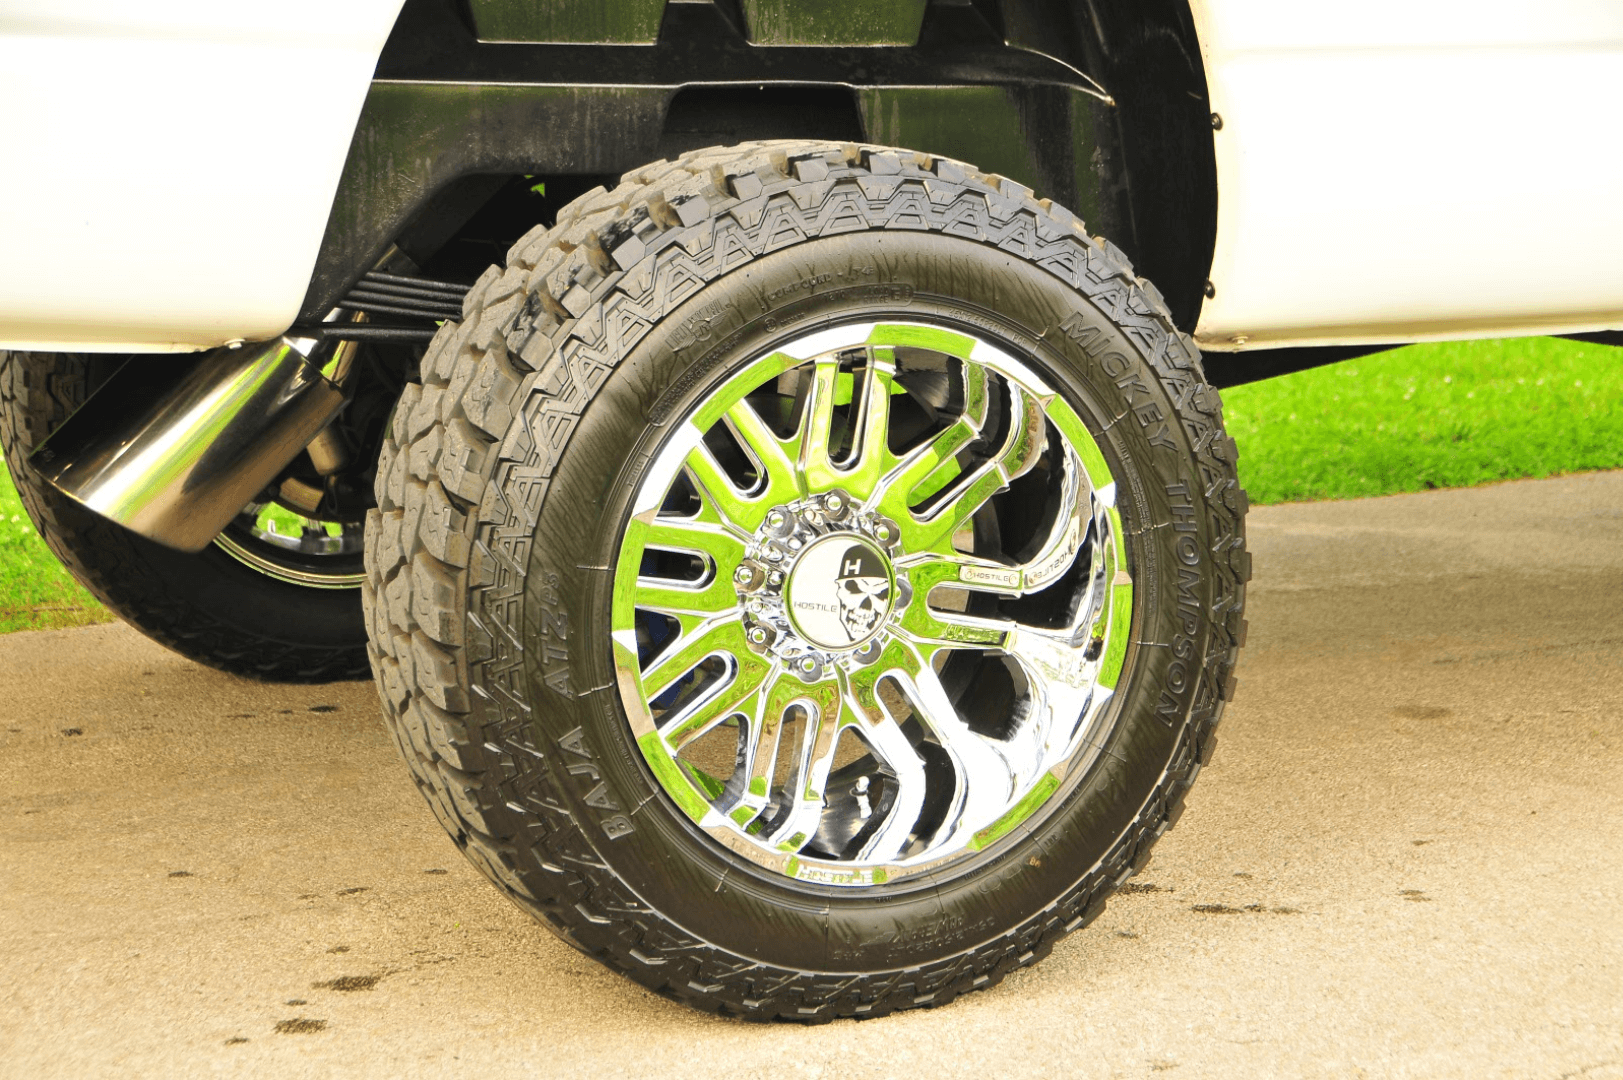 The 20-inch chrome Hostile Zombie wheels were sourced through XTown Performance. The wheels are wrapped with Mickey Thompson ATZP3 35-inch tires.